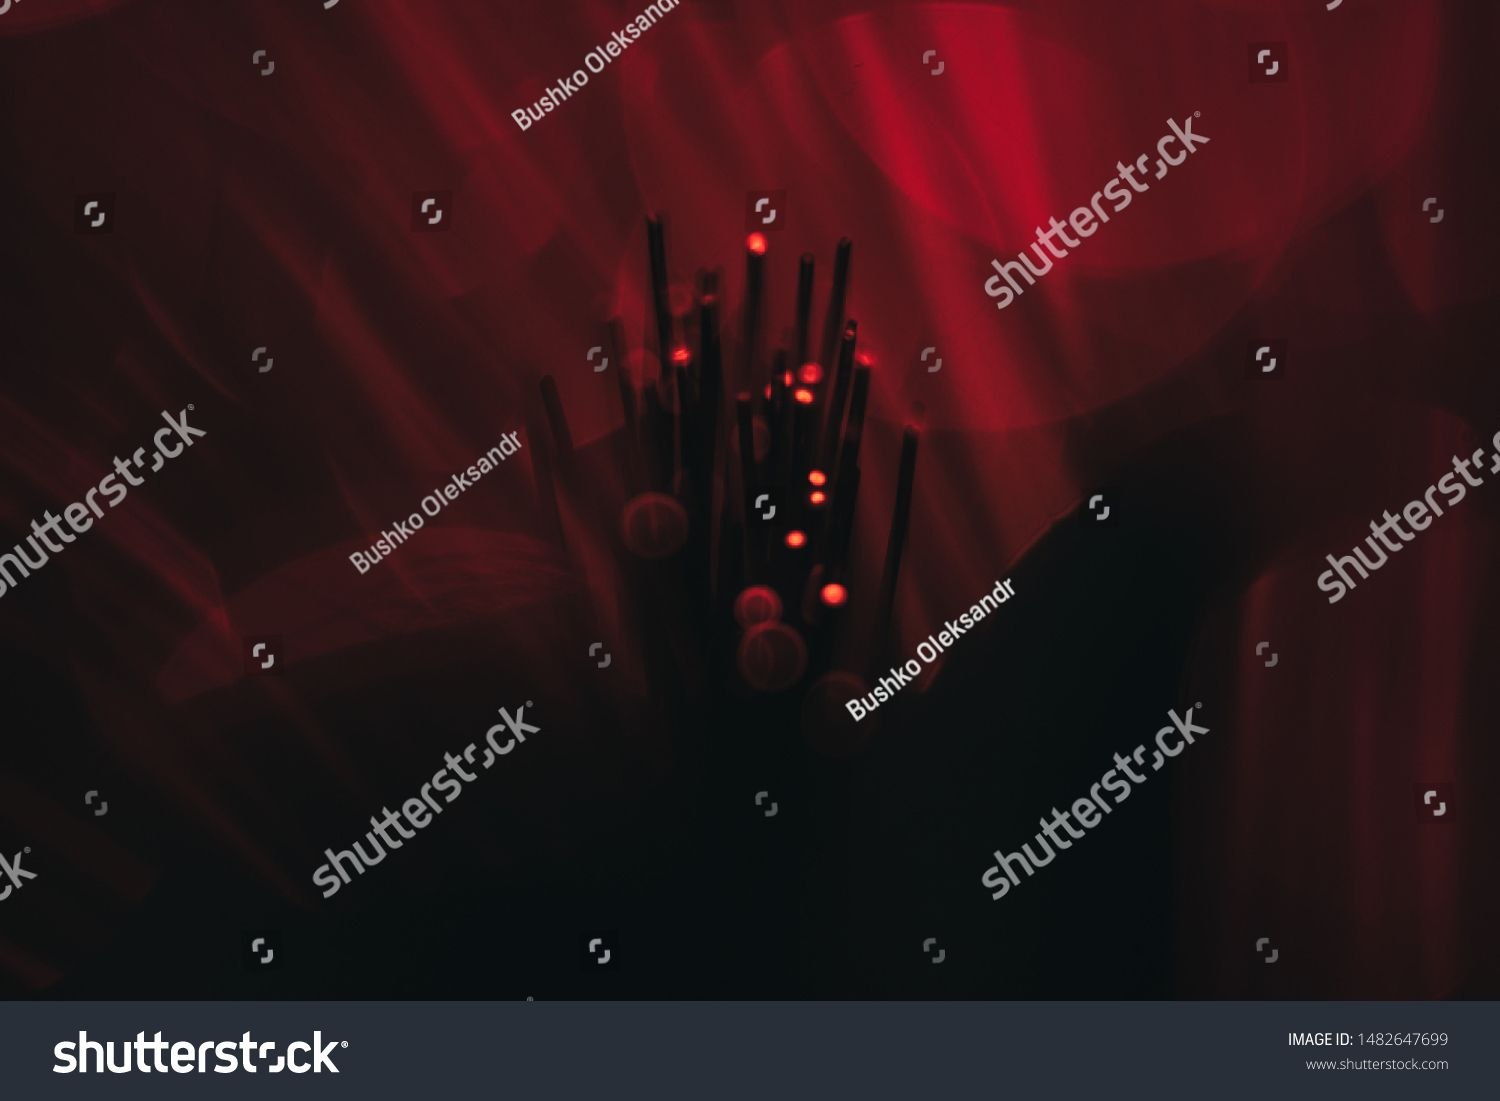 Beautiful Abstract Fiber Optical Network Cable On A Red Glow Background Ad Ad Fiber Optical Beautiful Abstract Network Cable Networking Abstract